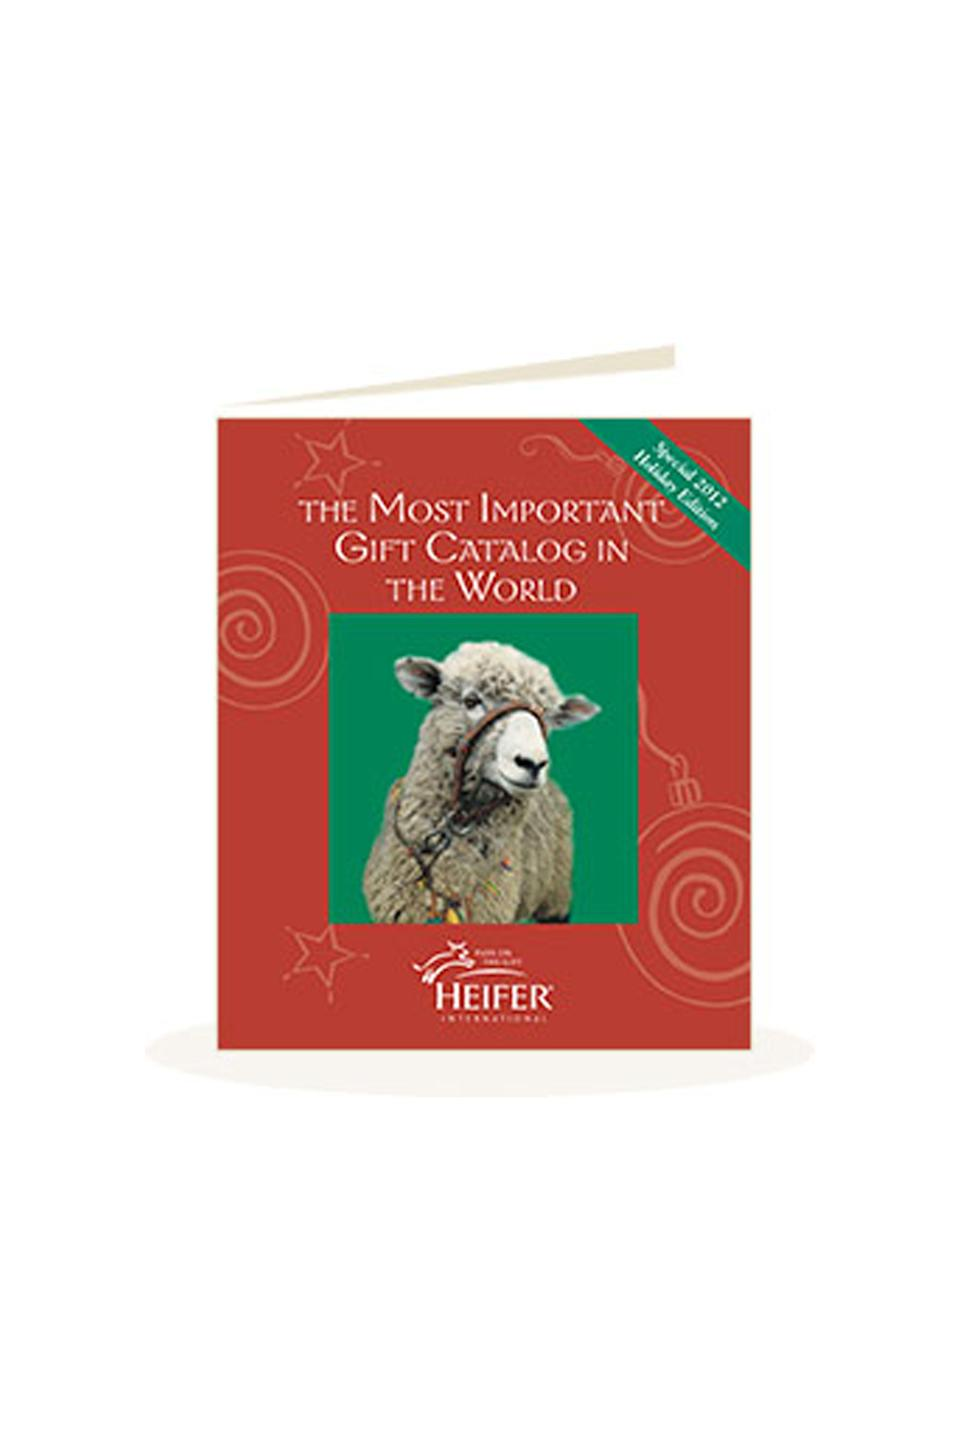 """<strong>Heifer International</strong> heifer.org <strong>$500.10</strong> <a href=""""https://www.heifer.org/gift-catalog/gift-card.html"""" rel=""""nofollow noopener"""" target=""""_blank"""" data-ylk=""""slk:Shop Now"""" class=""""link rapid-noclick-resp"""">Shop Now</a> 'Tis the season of giving, and nothing is more thoughtful than a donation in someone's name. Now you can email gift cards from Heifer International, so your friends and family can browse through their options and choose an impactful gift — from stoves for a village to a water buffalo share."""